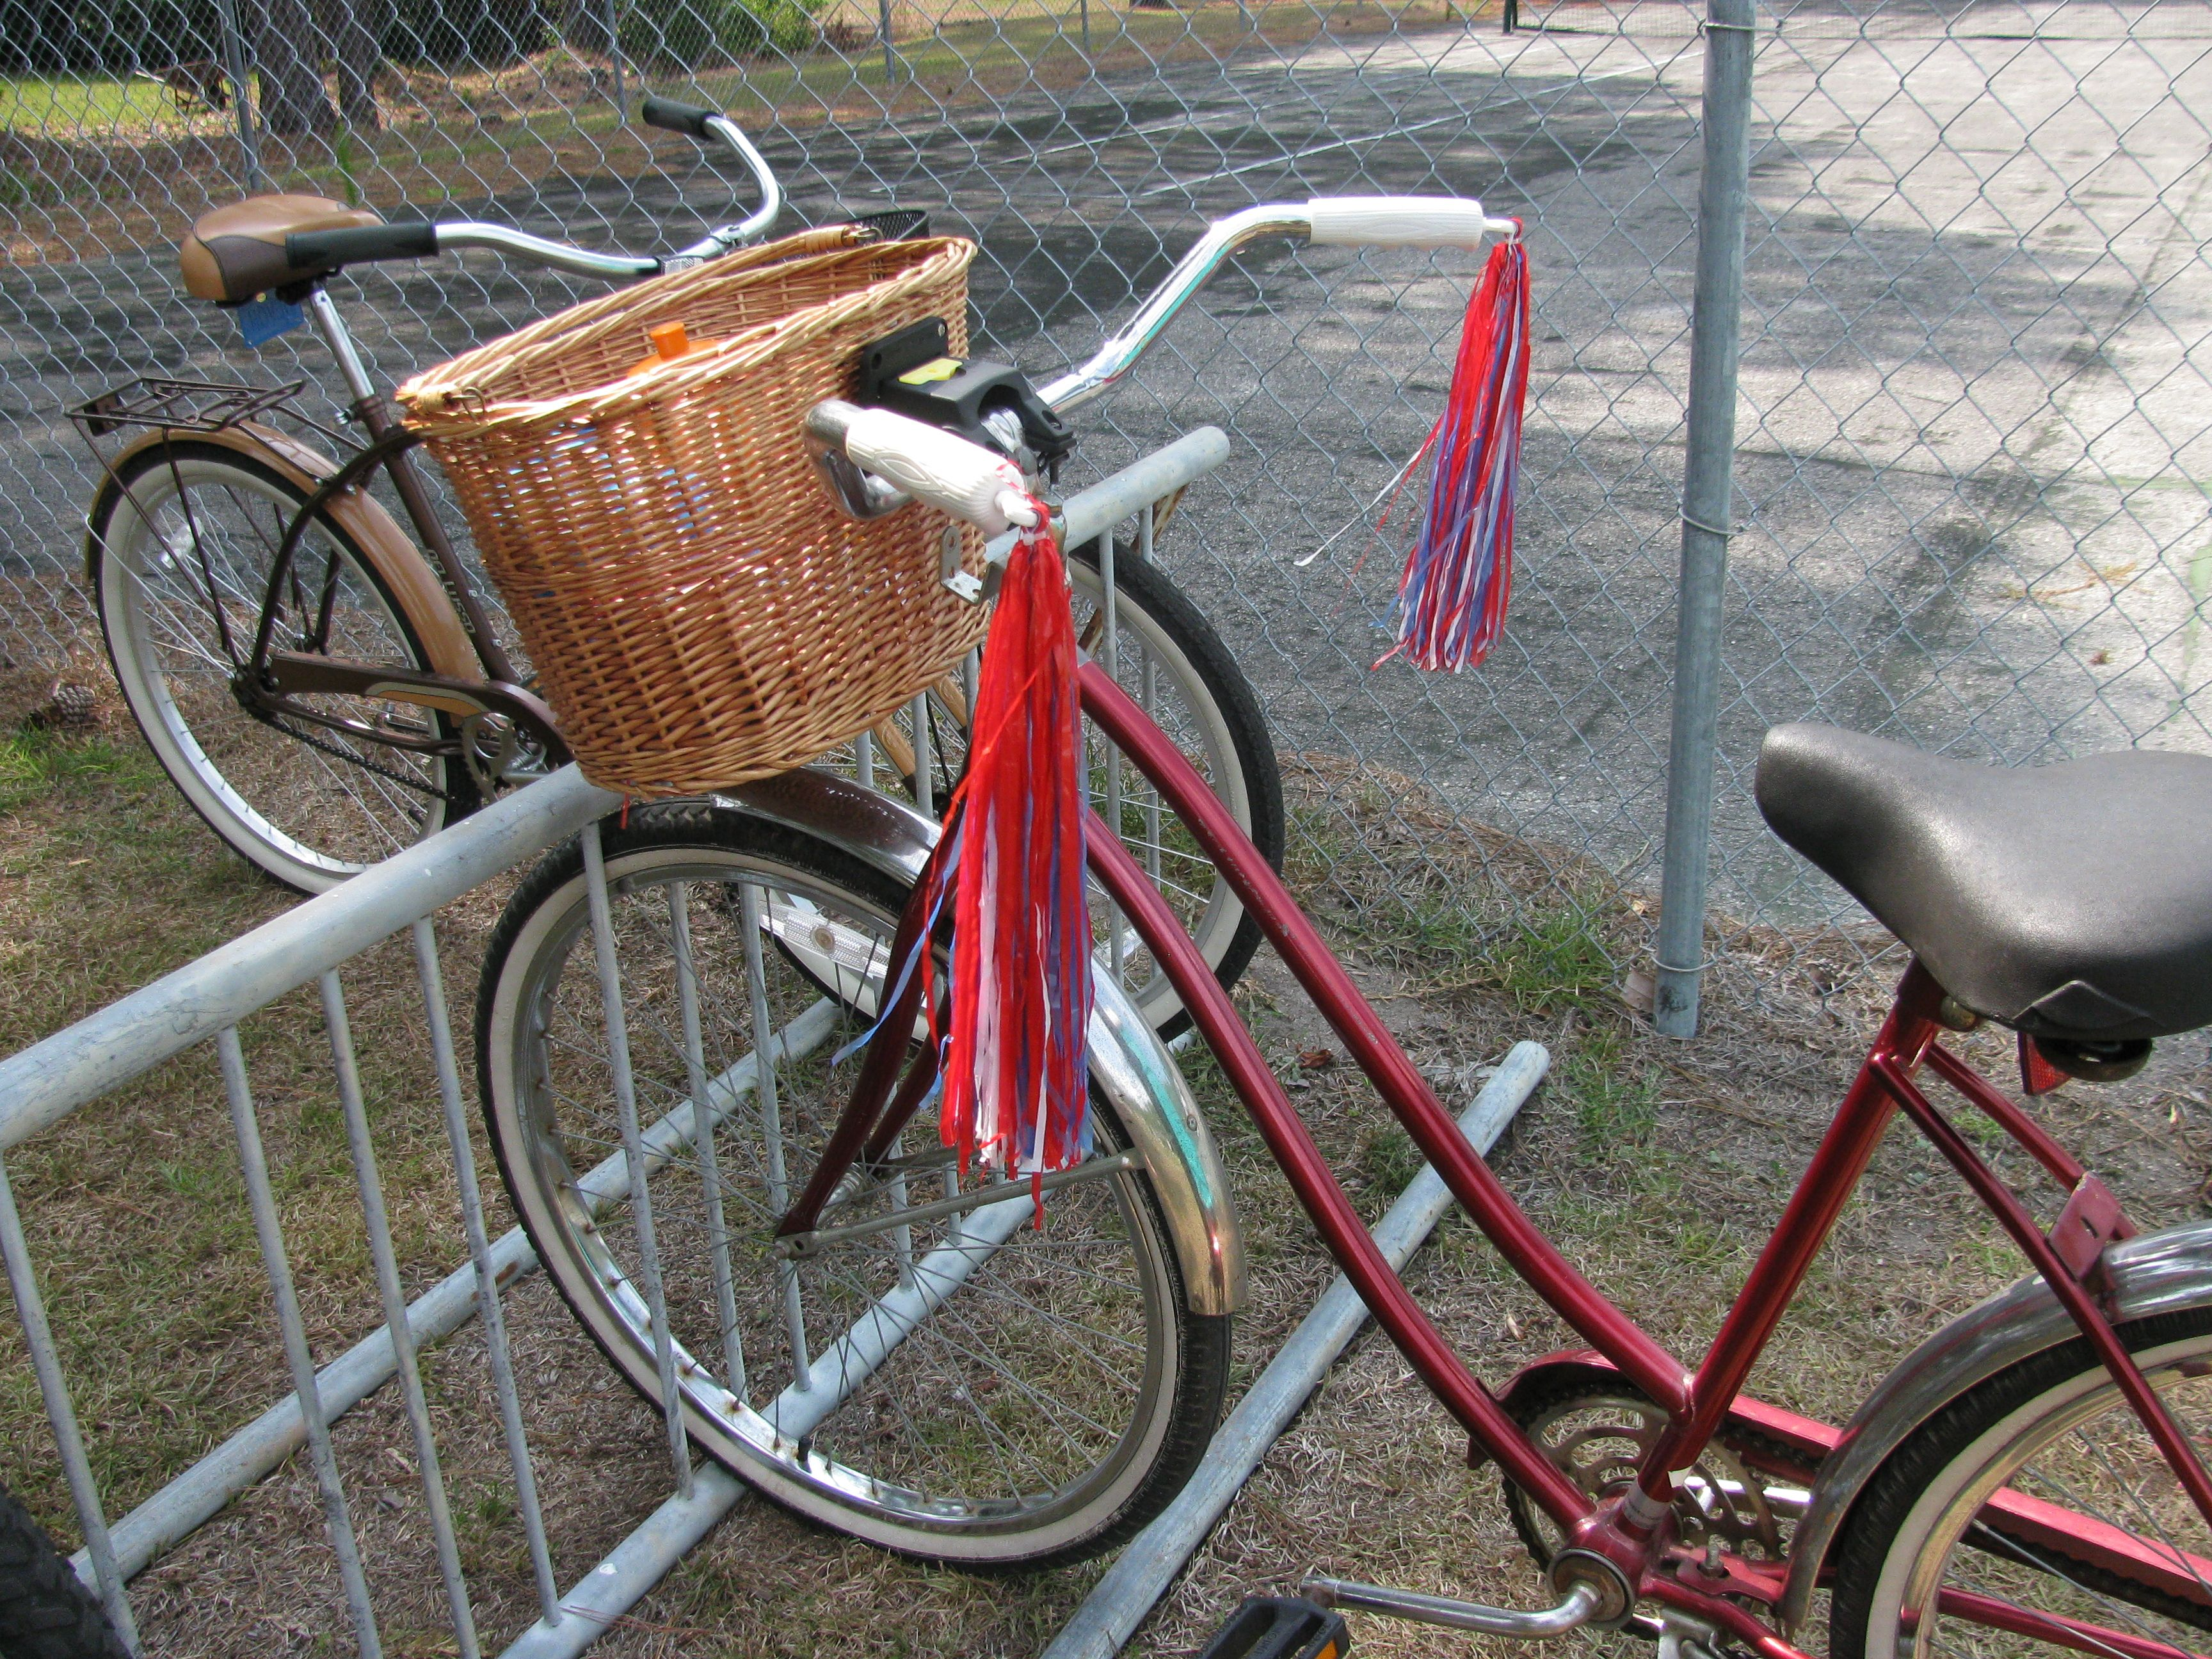 My bike with the wicker basket on, the carmel bike is my grandsons, it came from Walmart.